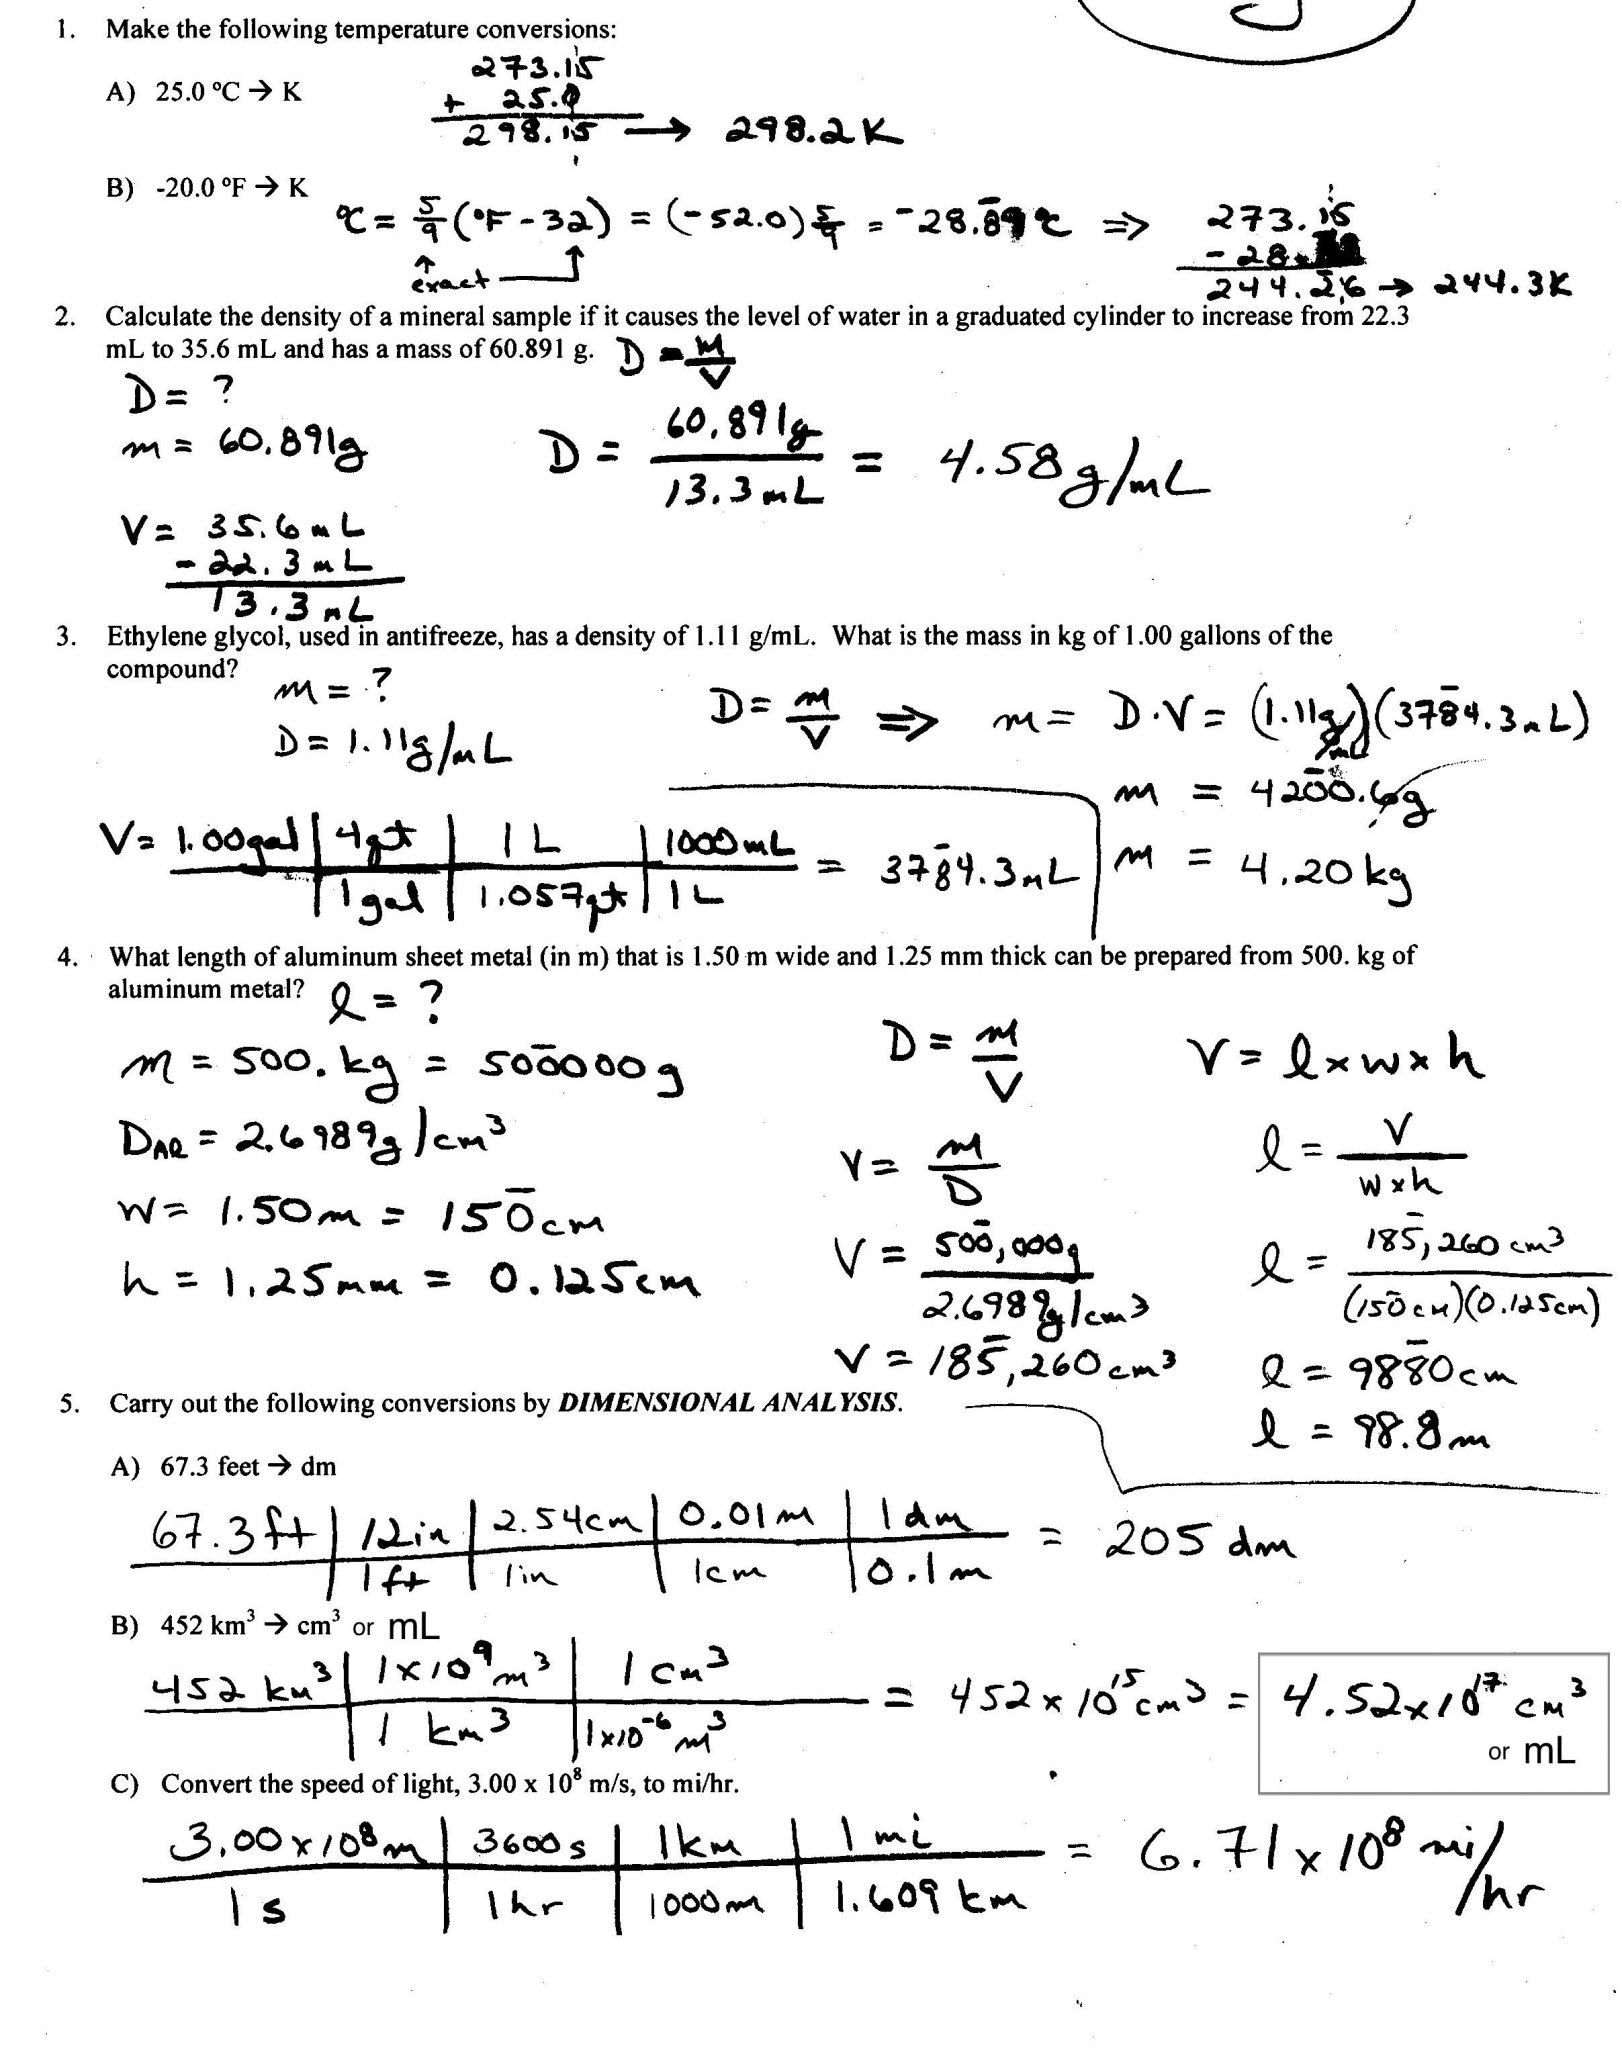 Generalqualified Science 8 Density Calculations Worksheet